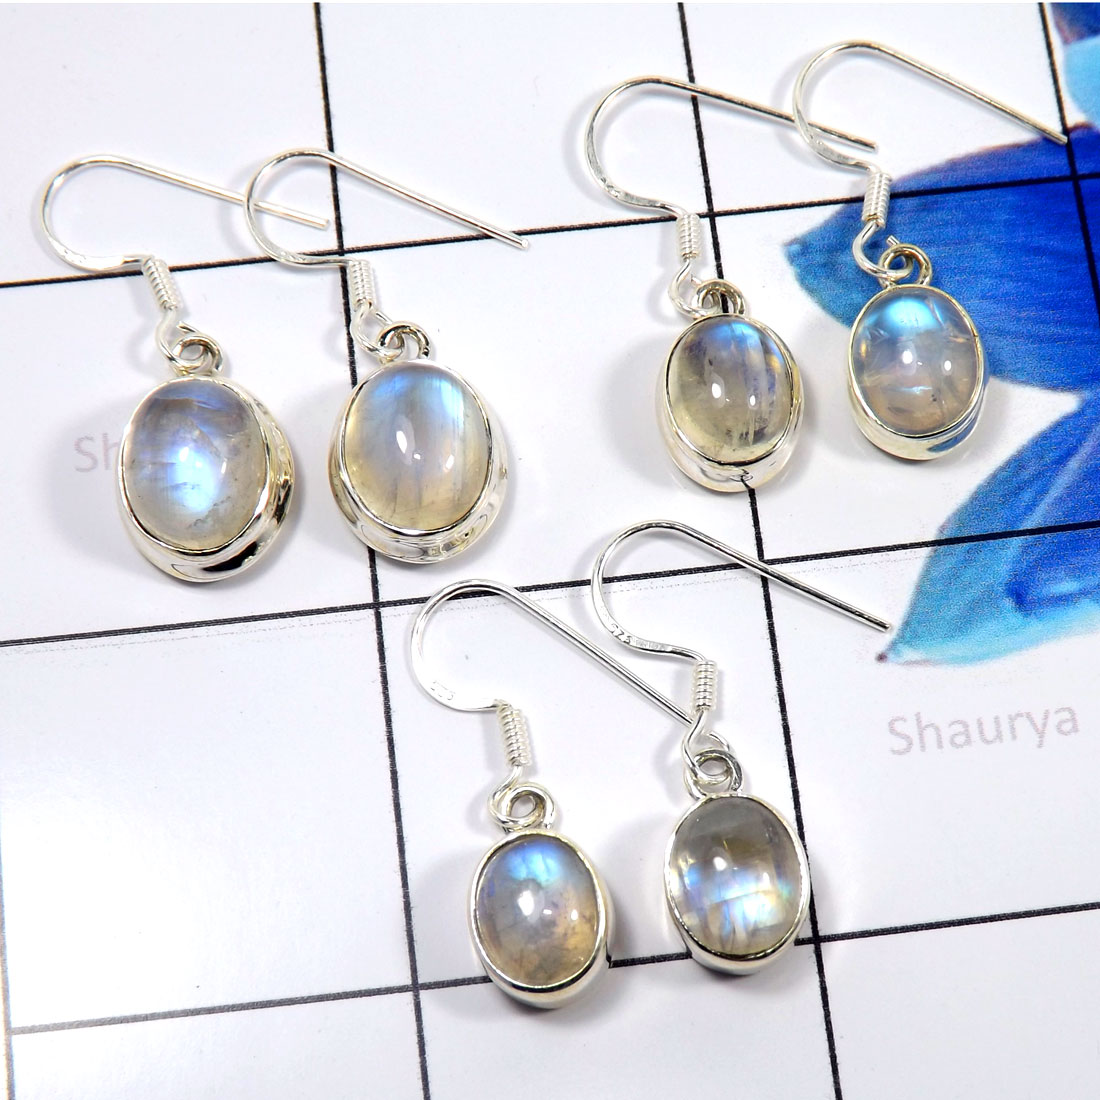 Rainbow Moonstone L - SVP813-Stunning Rainbow Moonstone Wholesale 3 Pcs Set 925 Sterli